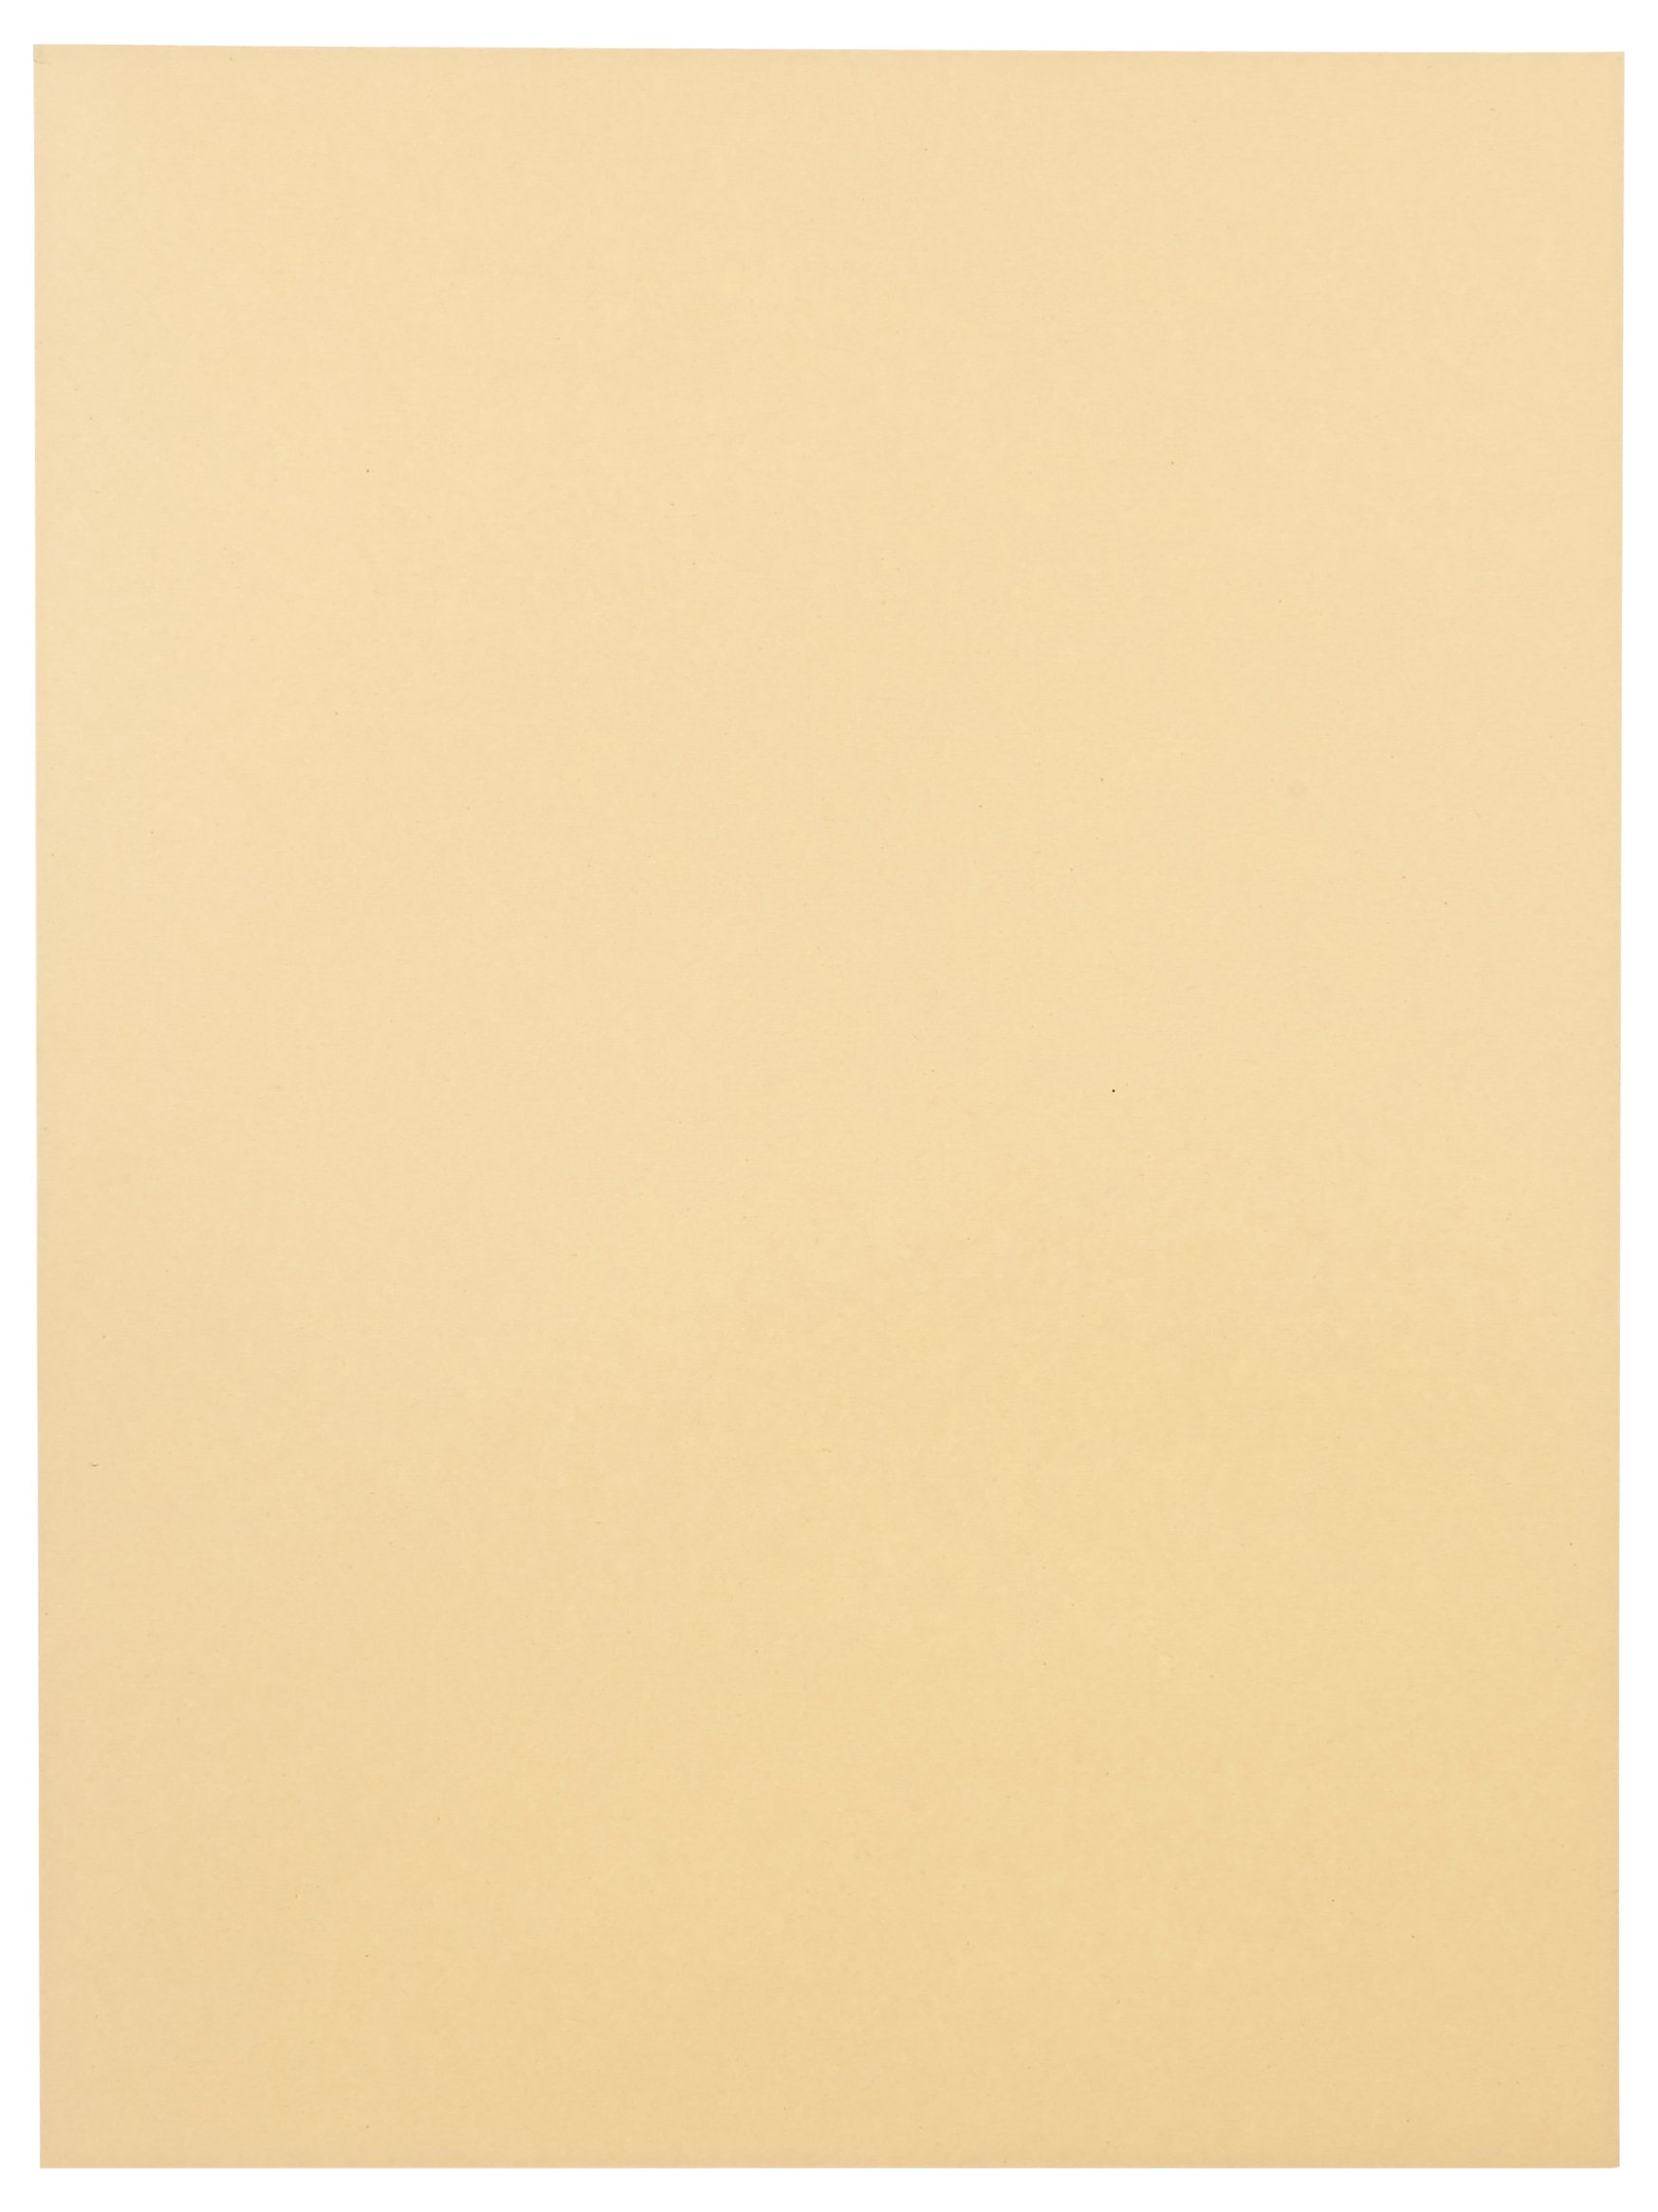 Sax Manila Drawing Paper, 80 Lb., 18 x 24 Inches, Pack of 500 by Sax